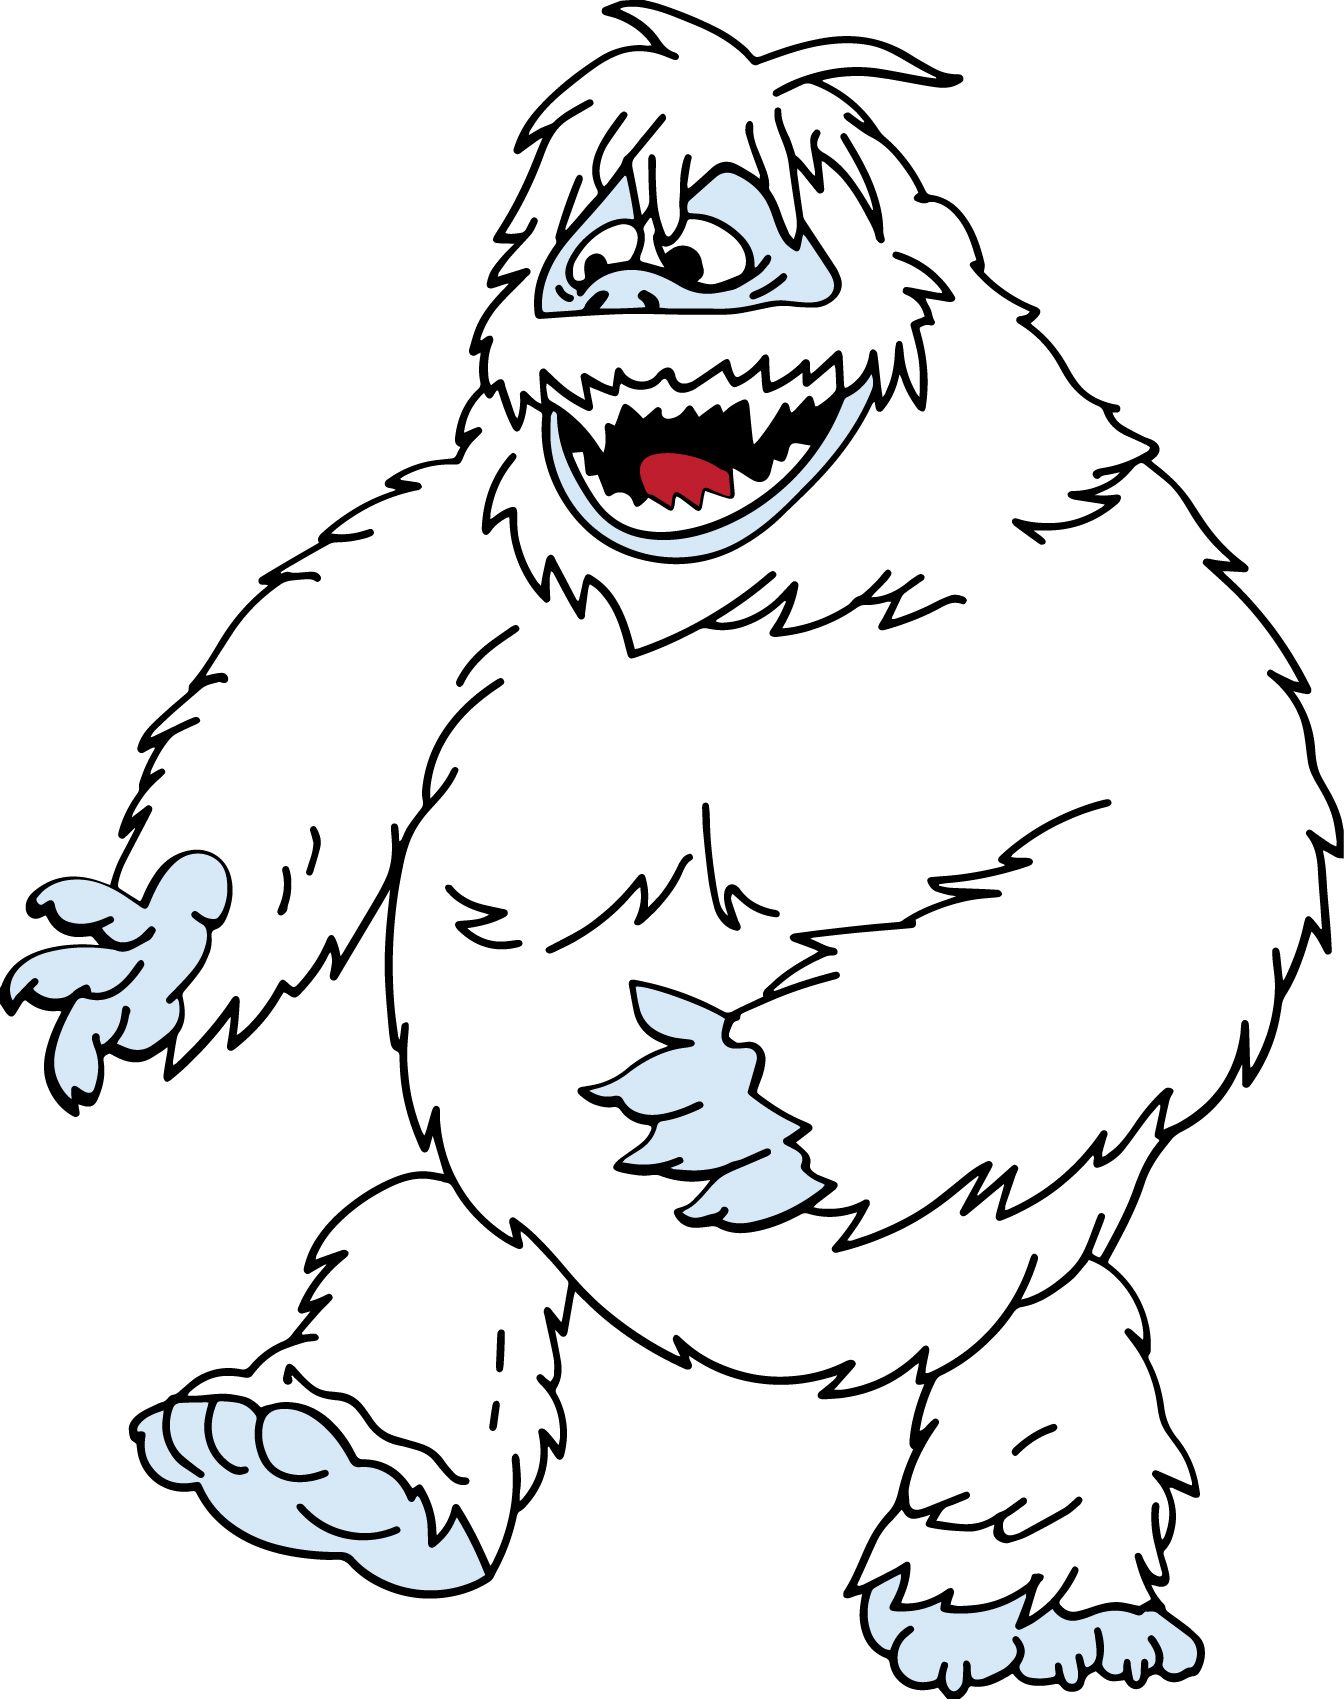 Rudolph S Bumble Svg Visit Www Svgcoop Com To Download This Svg For Free Snowman Coloring Pages Abominable Snowman Rudolph Christmas Characters